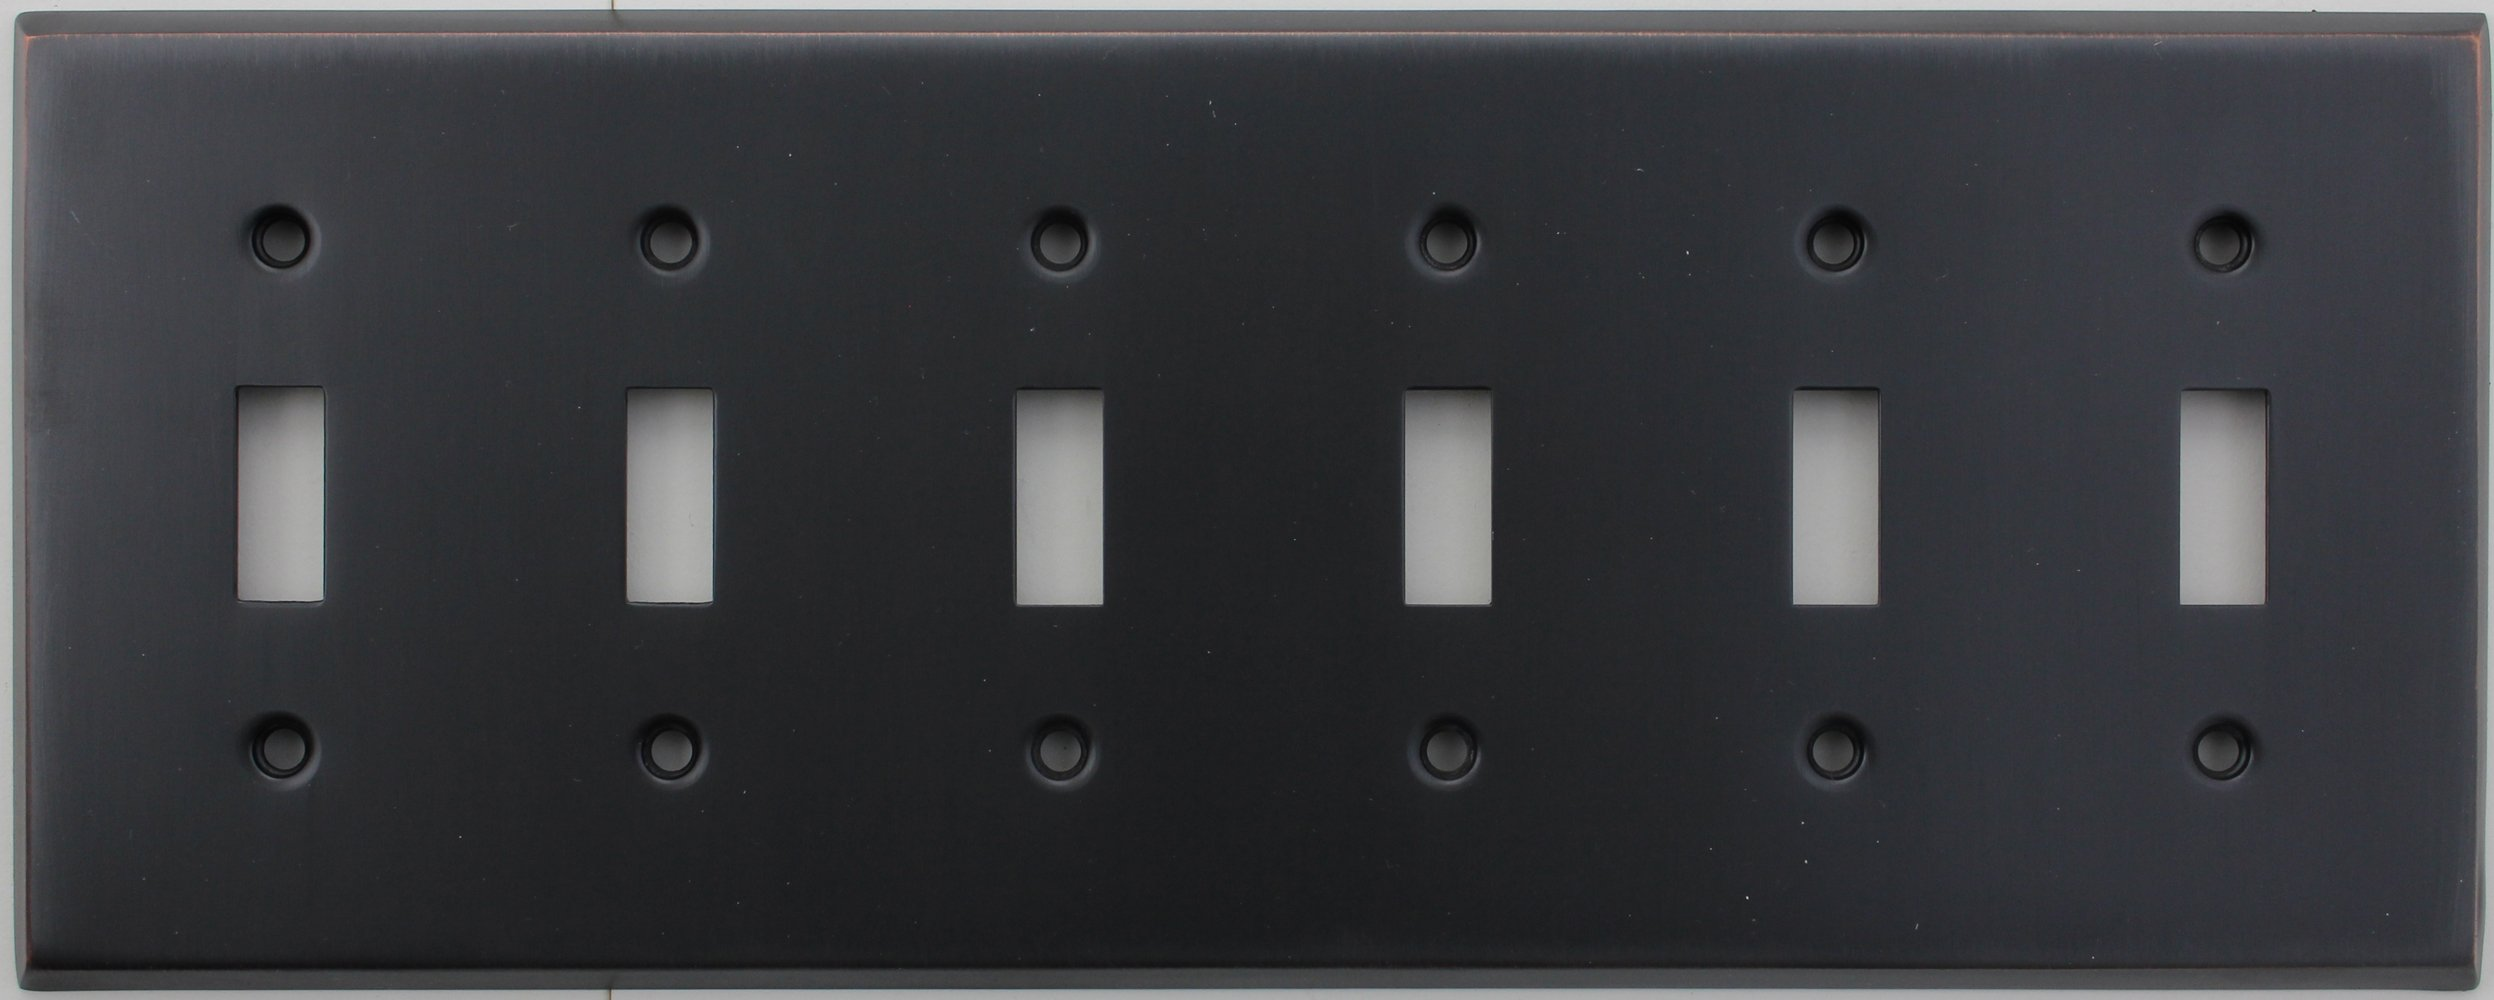 Classic Accents Stamped Steel Oil Rubbed Bronze Six Gang Toggle Light Switch Wall Plate